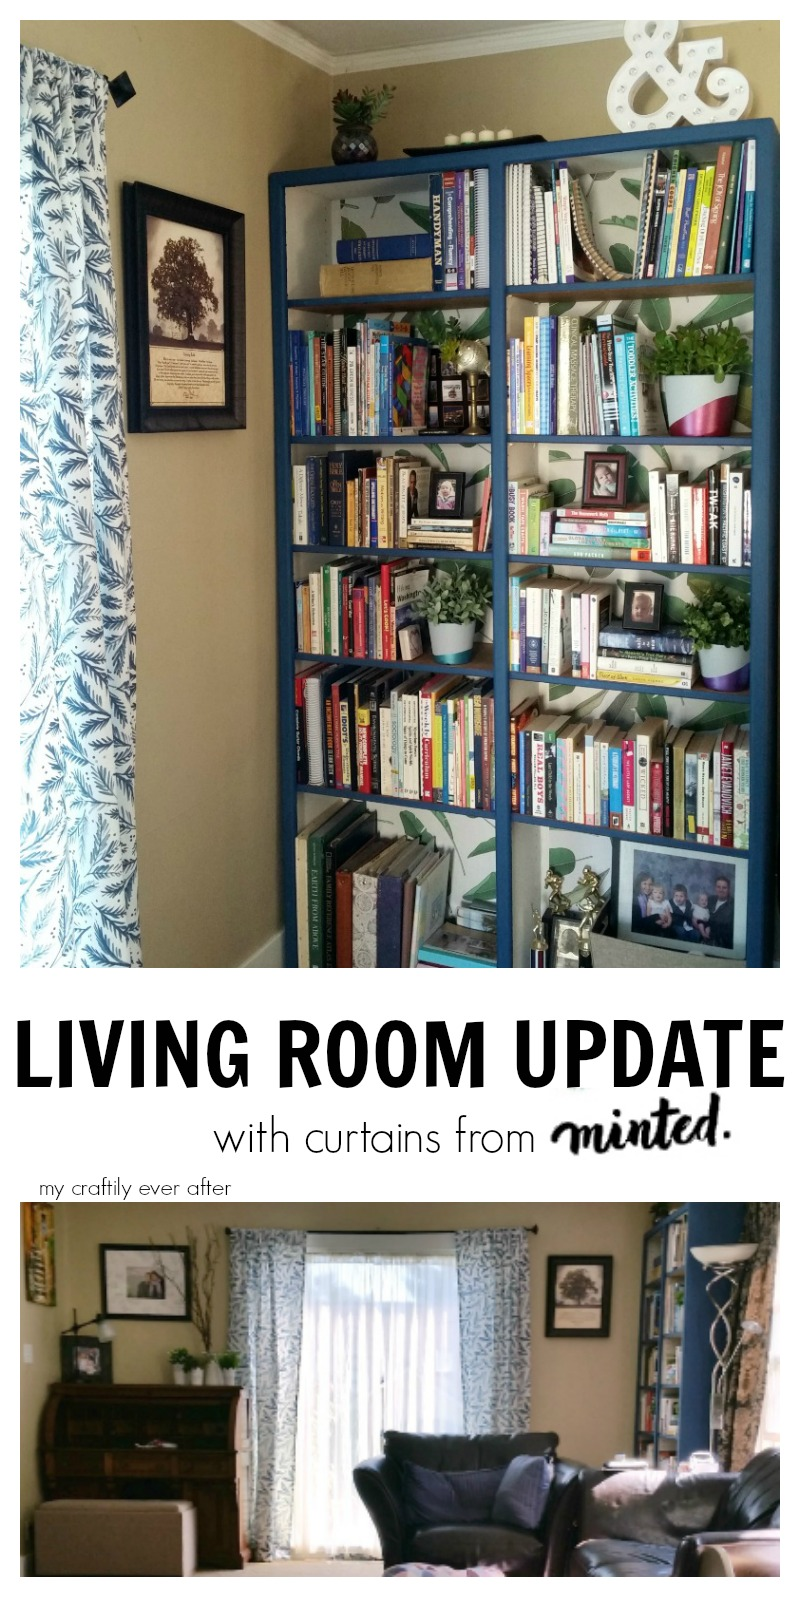 living room update with curtains from minted